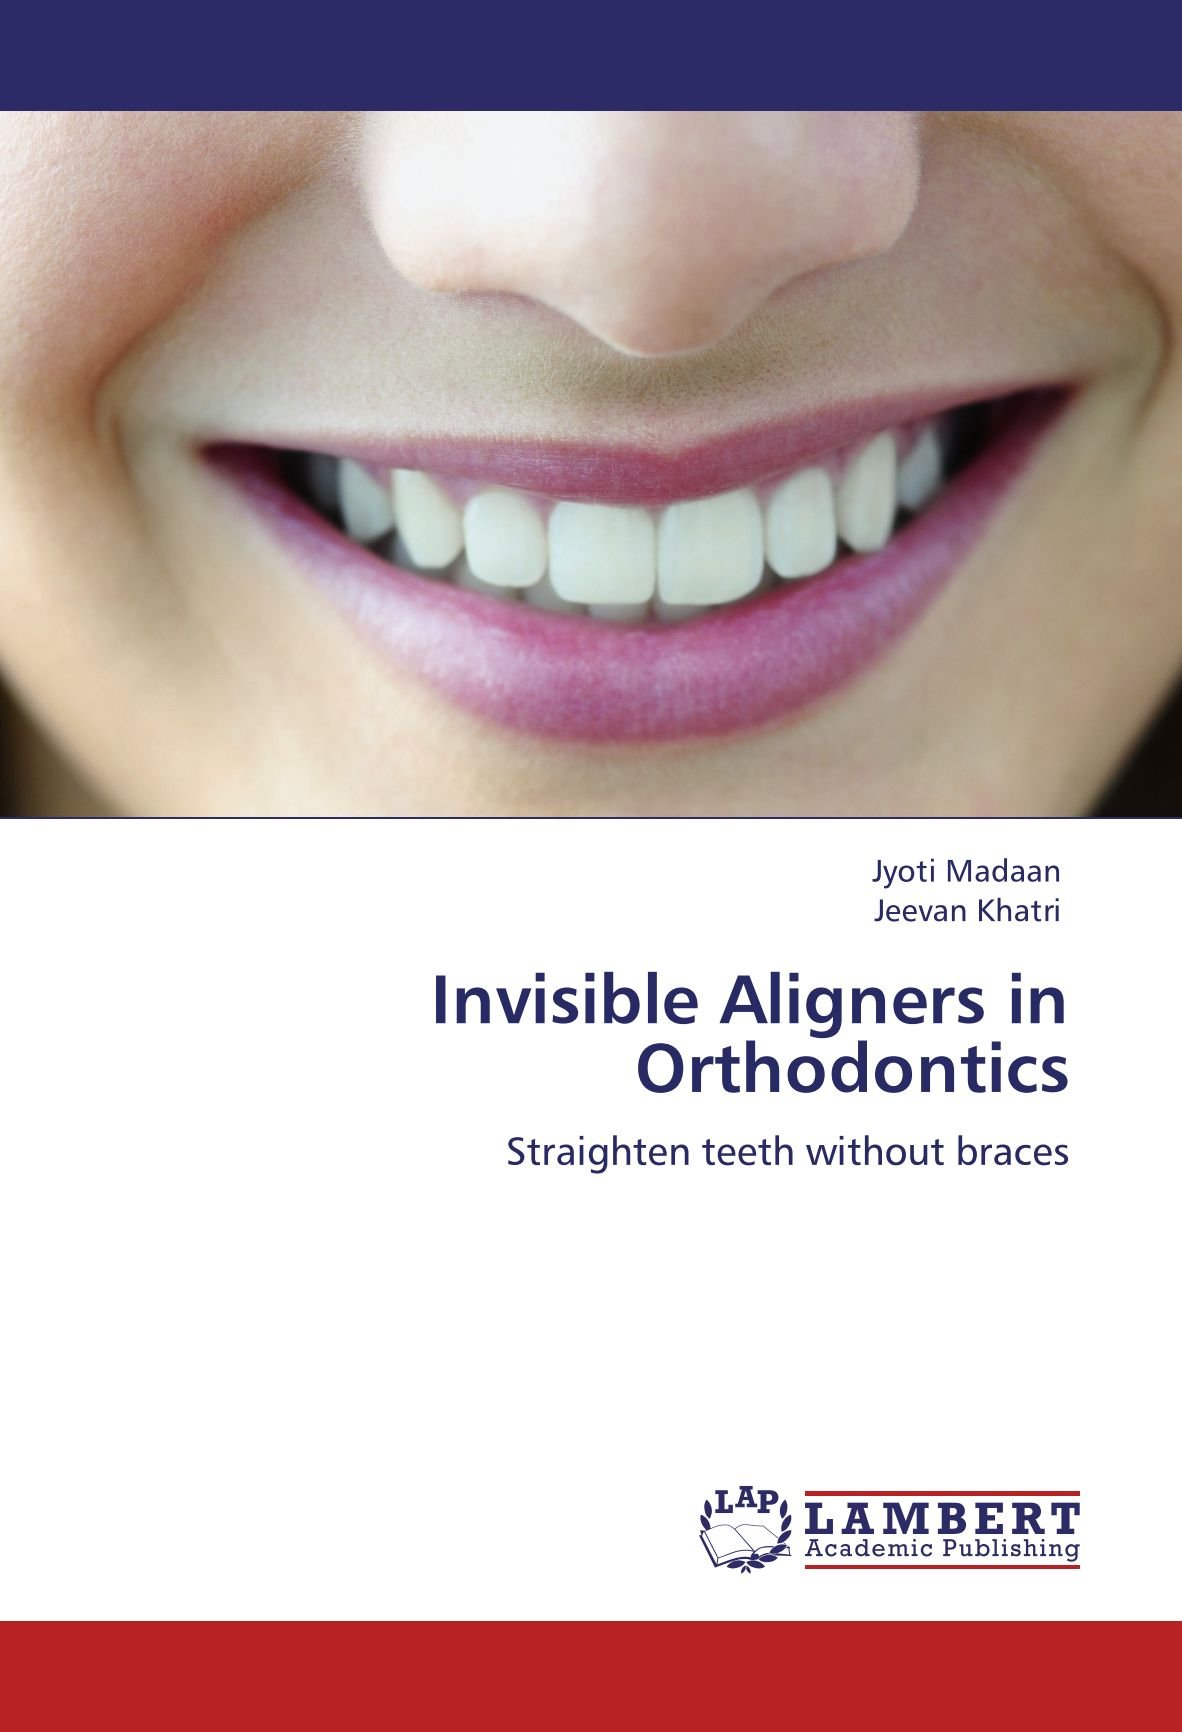 Invisible Aligners in Orthodontics: Straighten teeth without